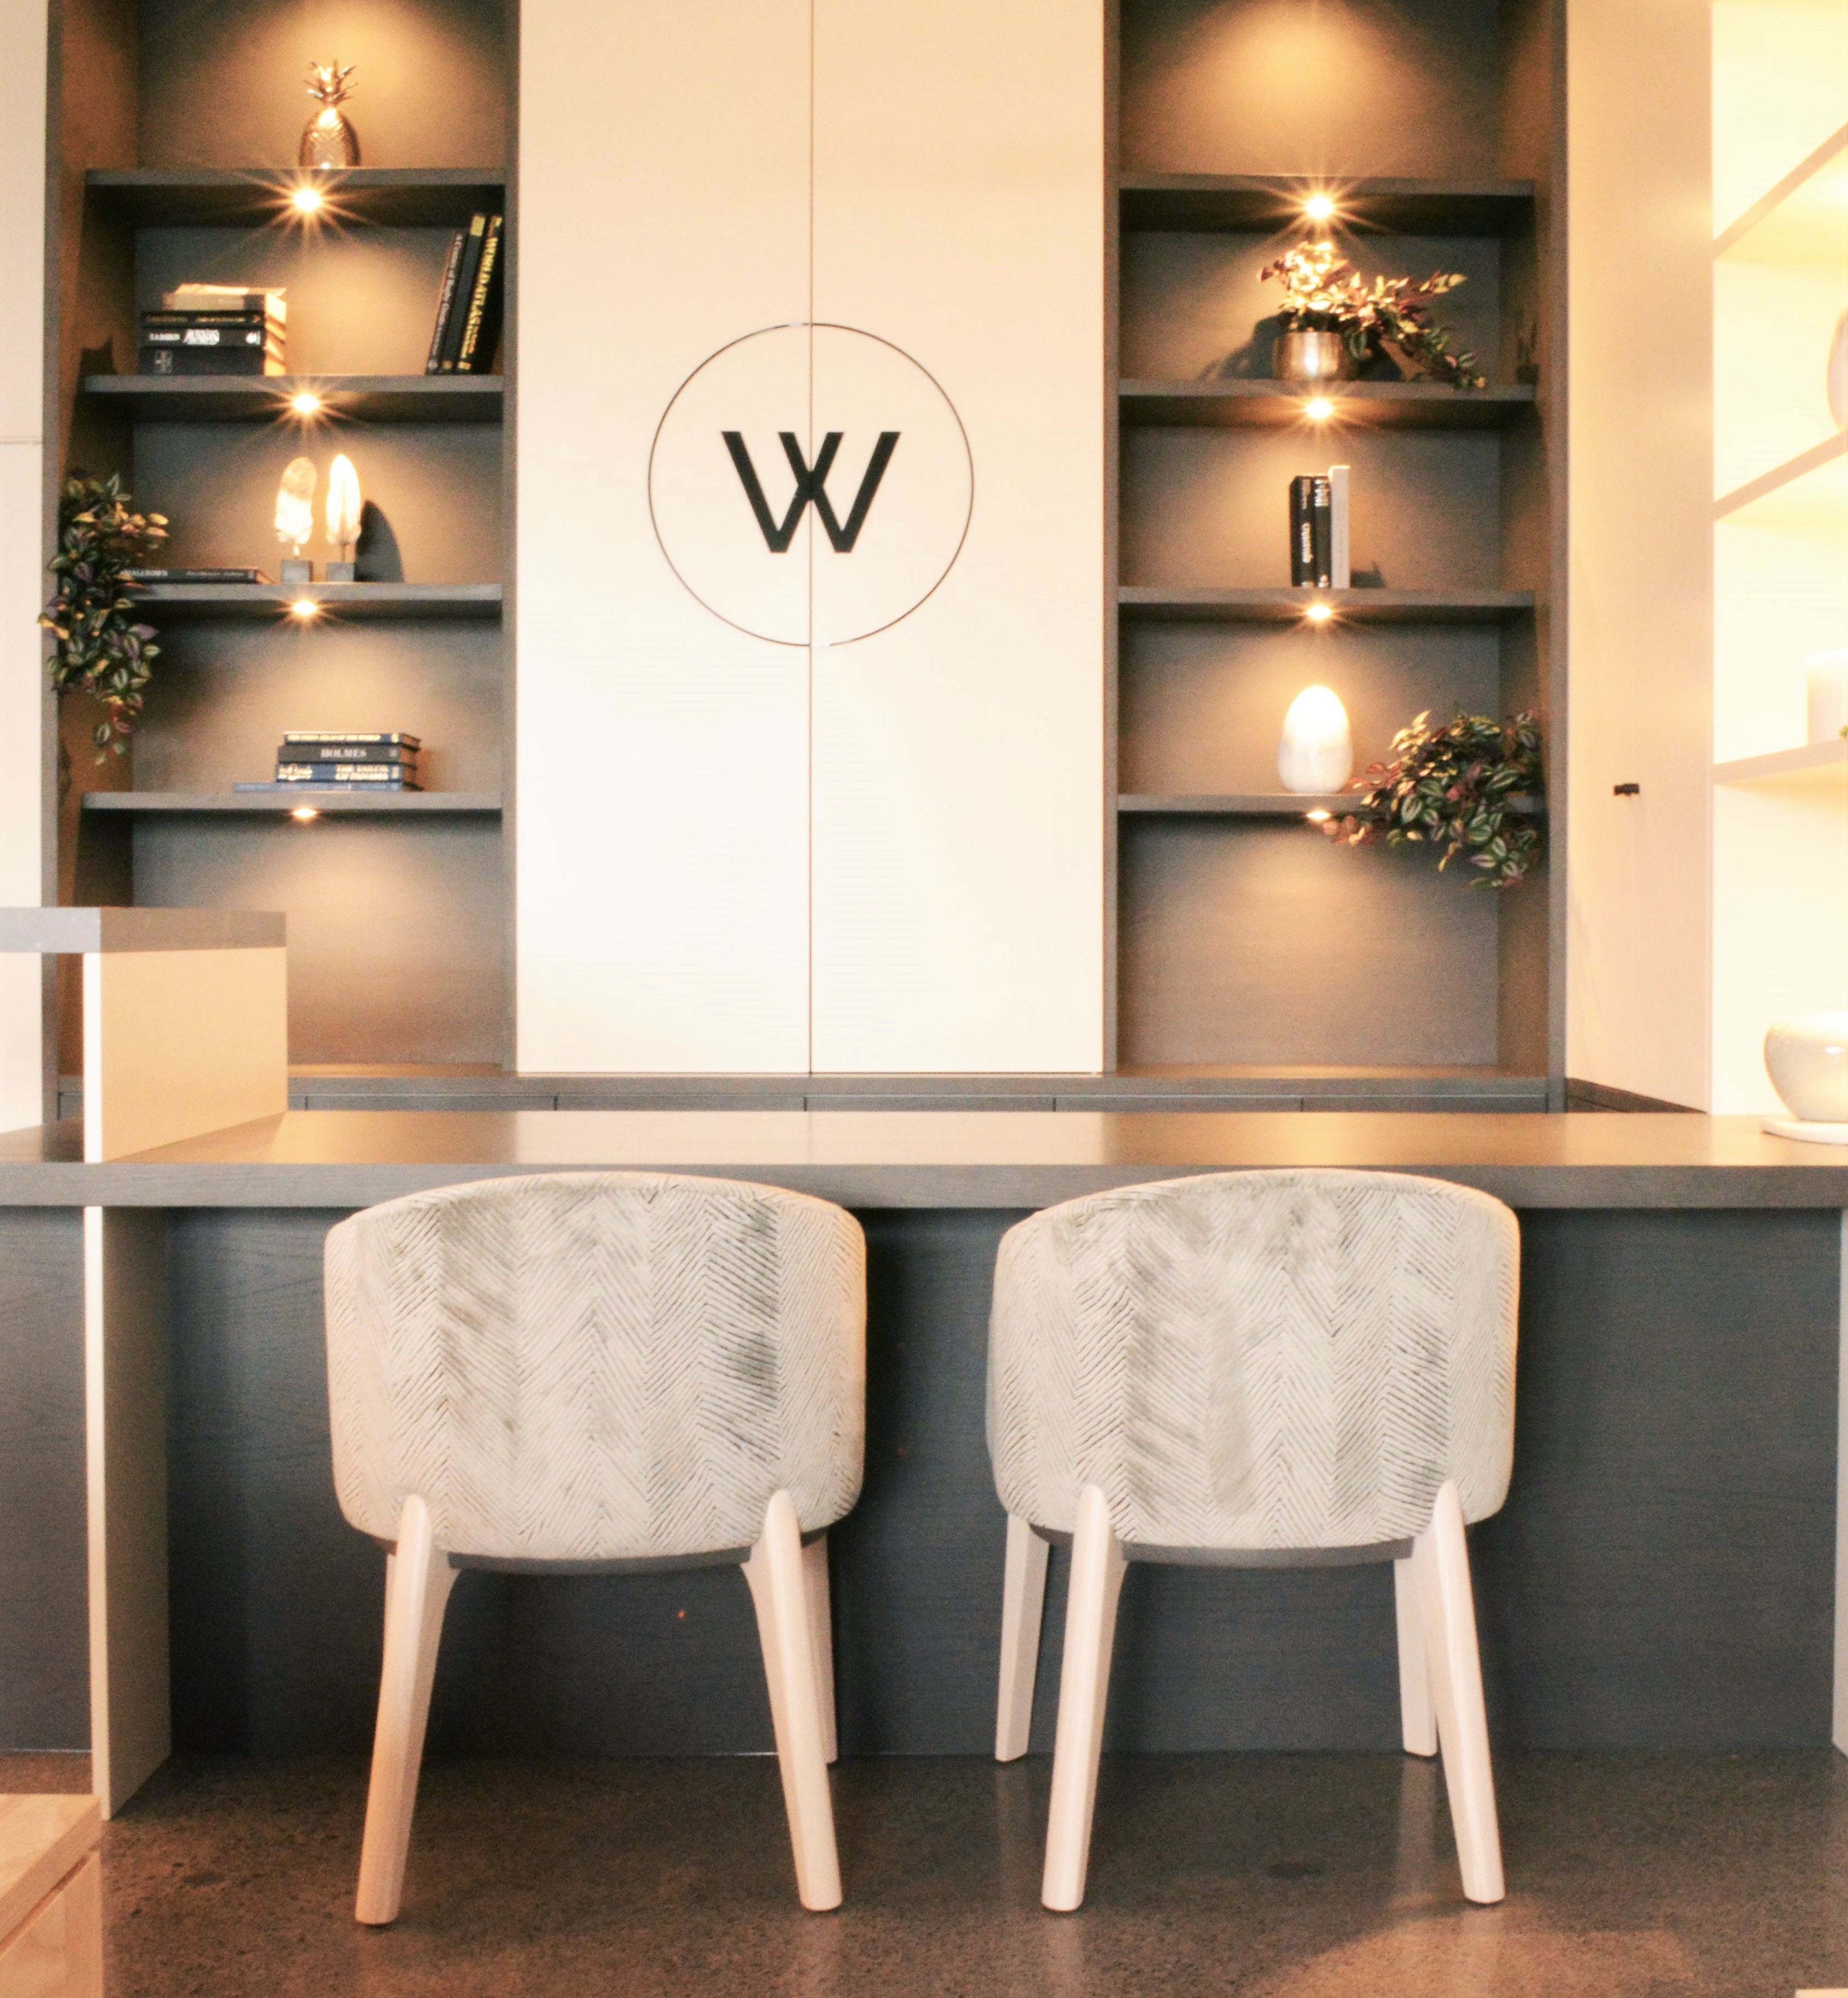 Woodwrights' Auckland showroom: open by appointment for an exclusive consultation. Photo: © Woodwrights